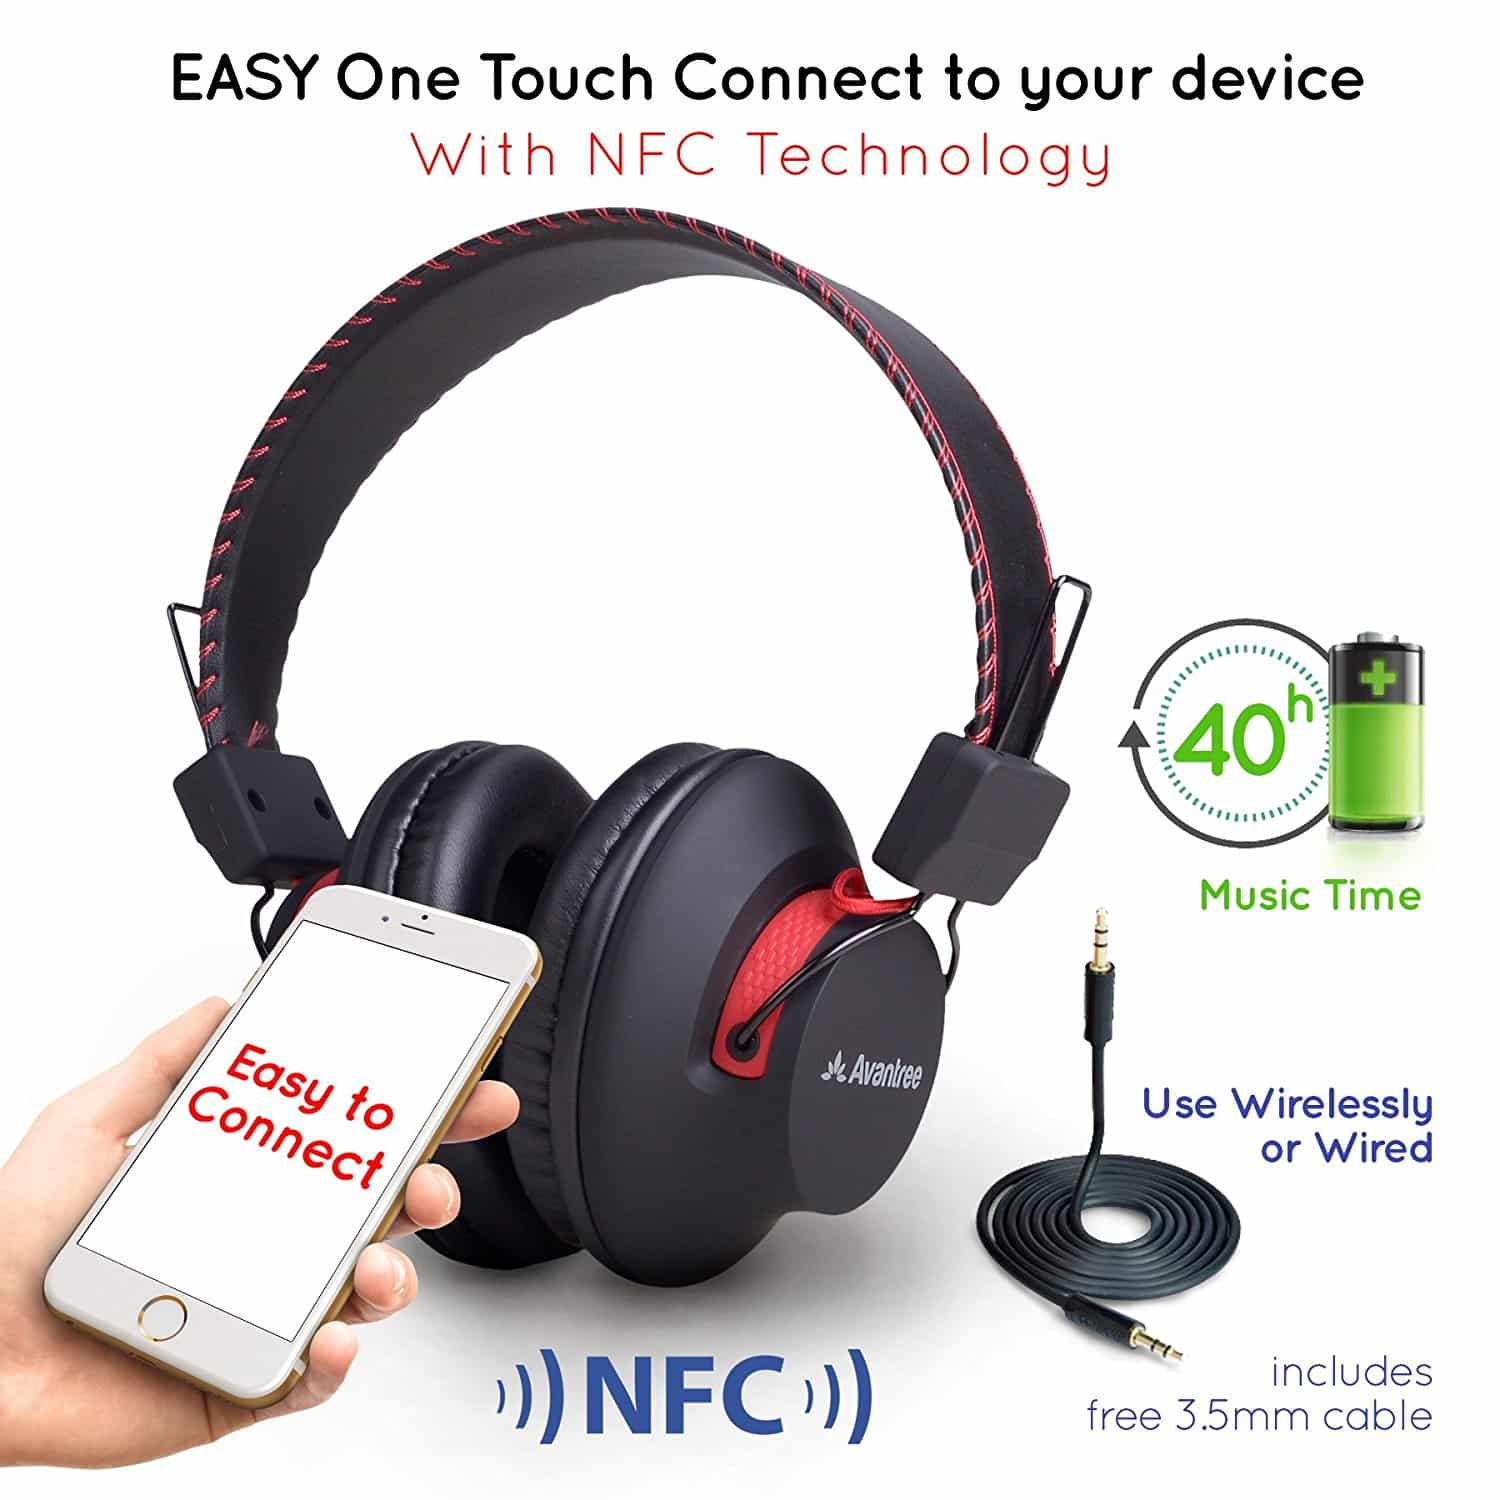 2eb70af90ab Avantree Bluetooth Over-Ear Headphones Reviews, Coupons, and Deals